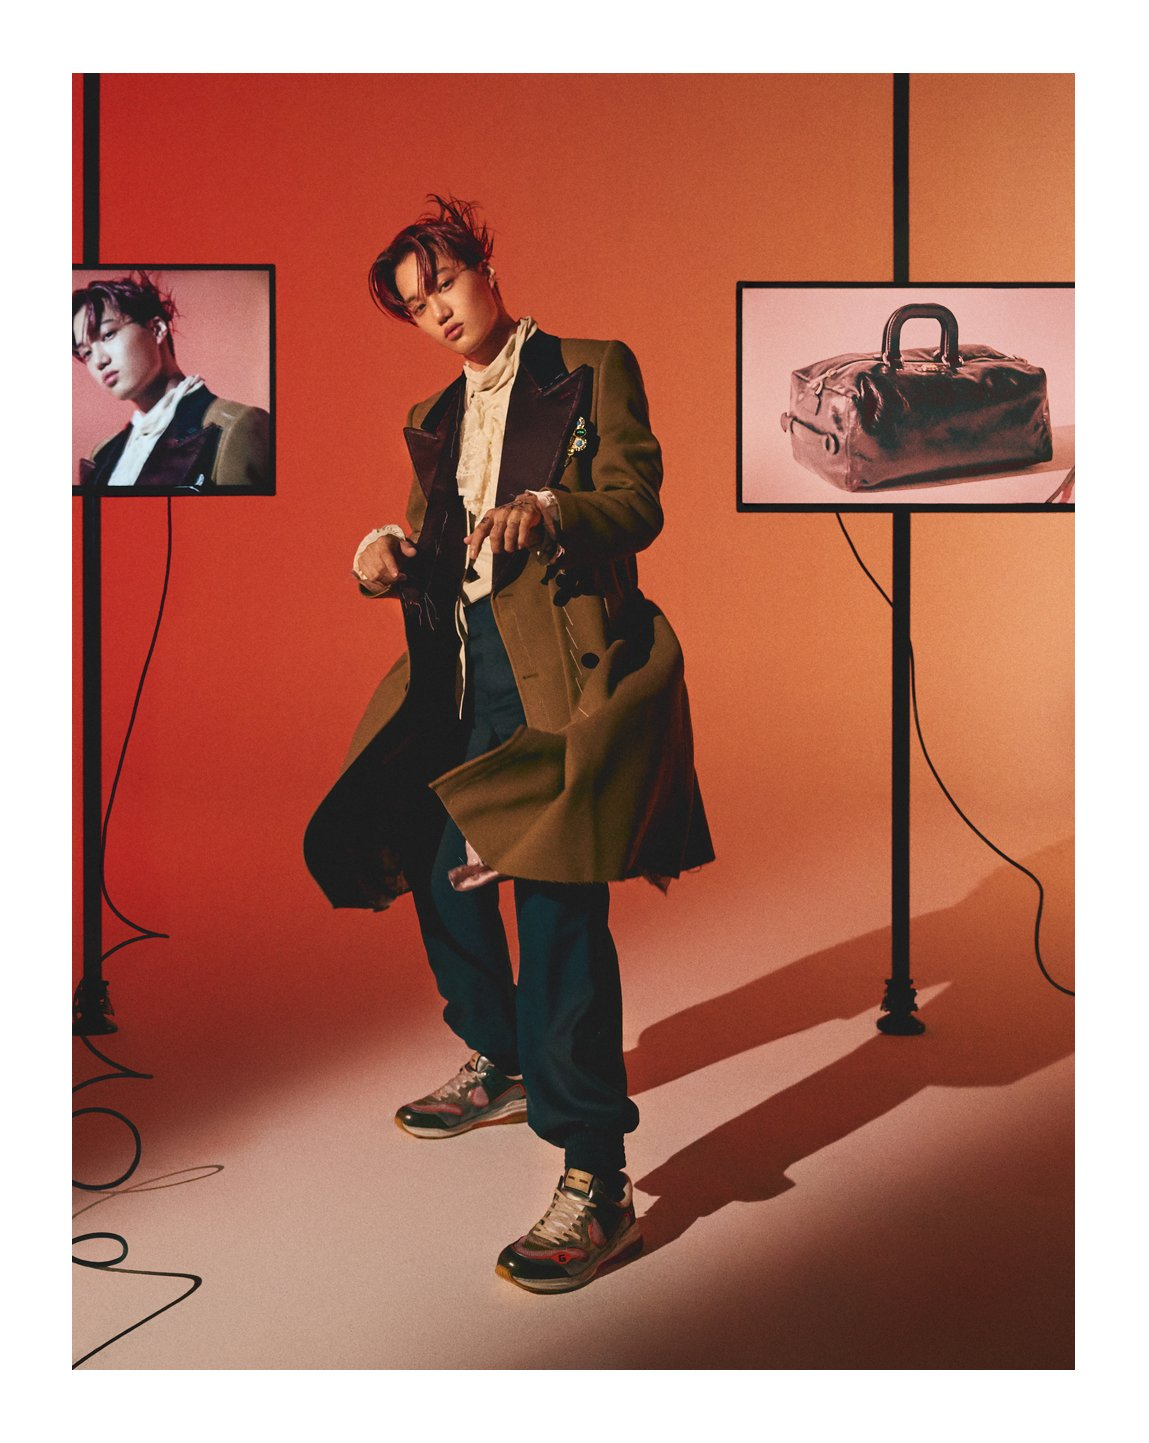 #Kai from @weareoneEXO appears in the September issue of @wkorea wearing #GucciFW19 by #AlessandroMichele. #EXO #GucciEditorials #GucciUltrapace  Photography by: #MokJungWook Styling by: #KimSeaJun https://t.co/RRJ38d1j1N